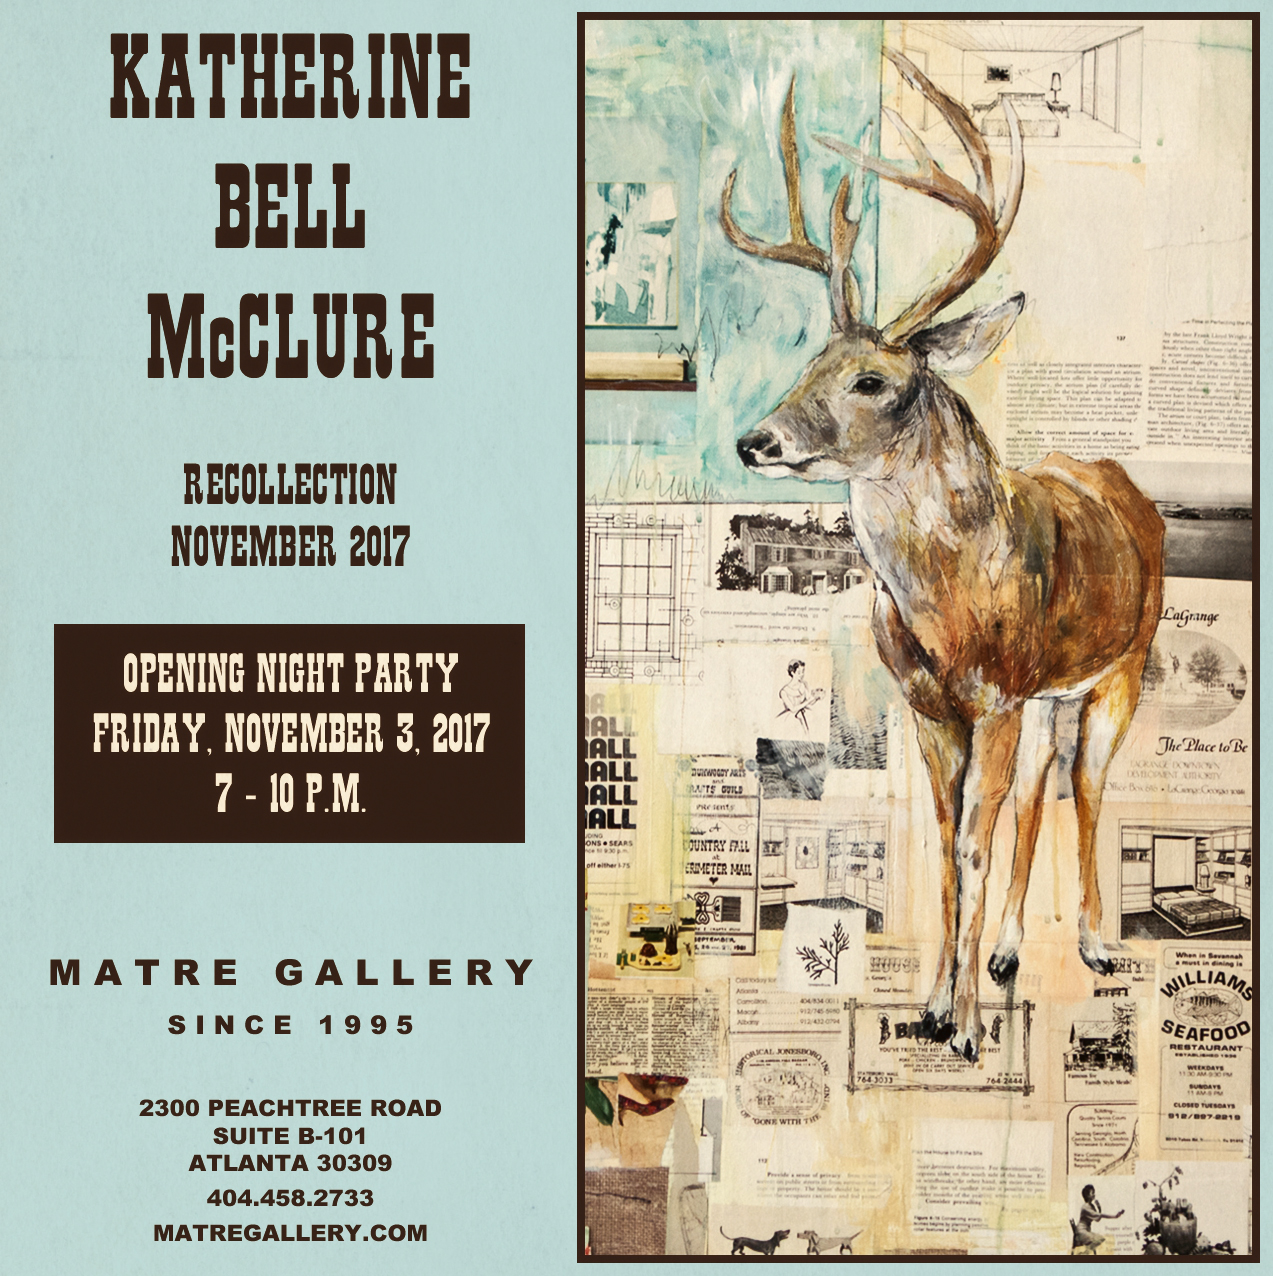 KATHERINE BELL McCLURERecollection - NOVEMBER 3 - 25, 2017Opening ReceptionFriday, November 3, 20177 - 10 p.m.View Works